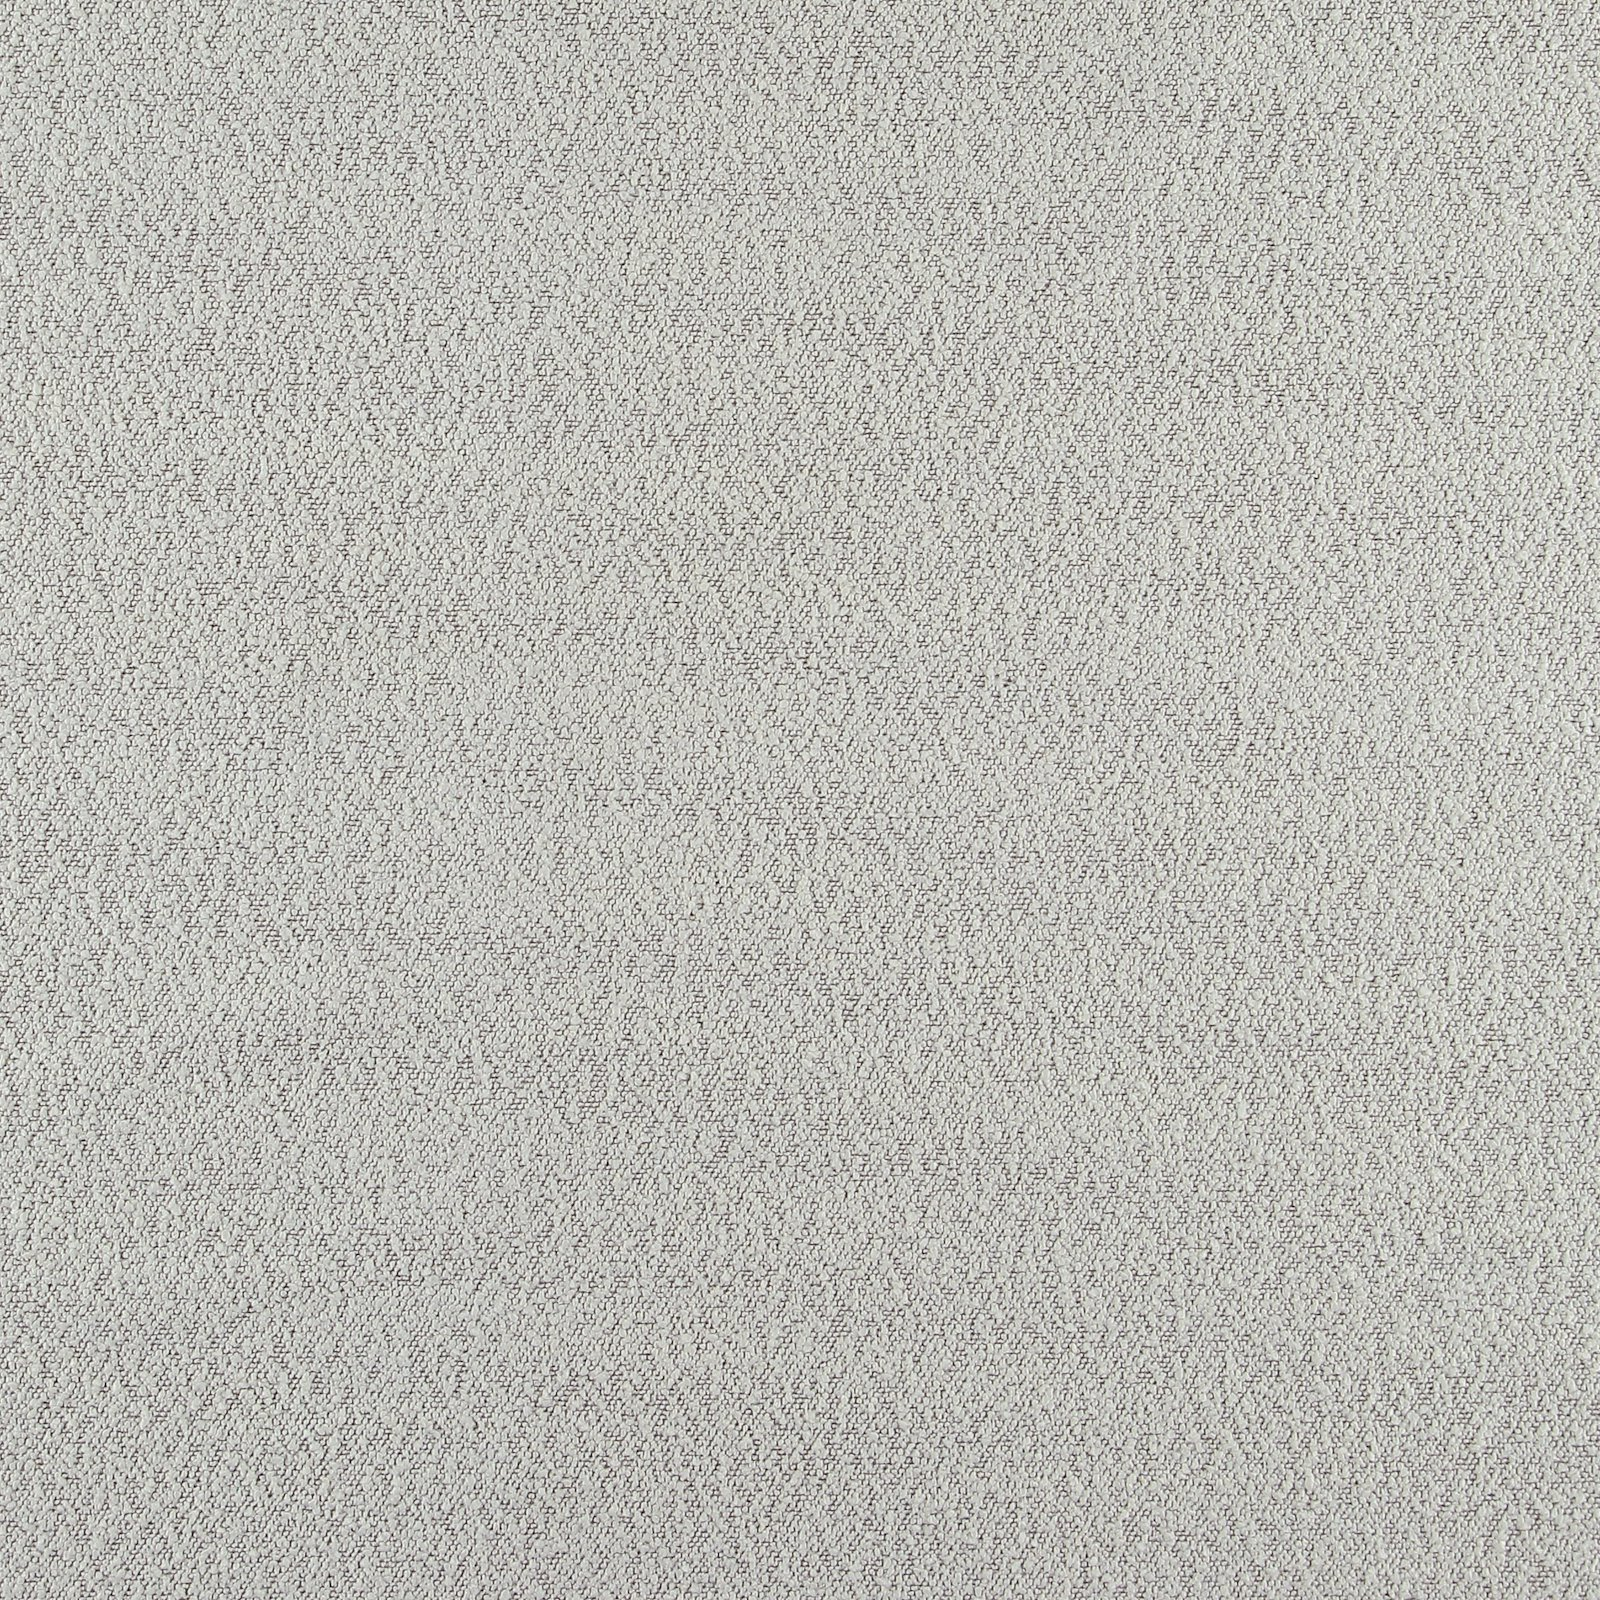 Upholstery boucle offwhite/putty melange 824161_pack_sp